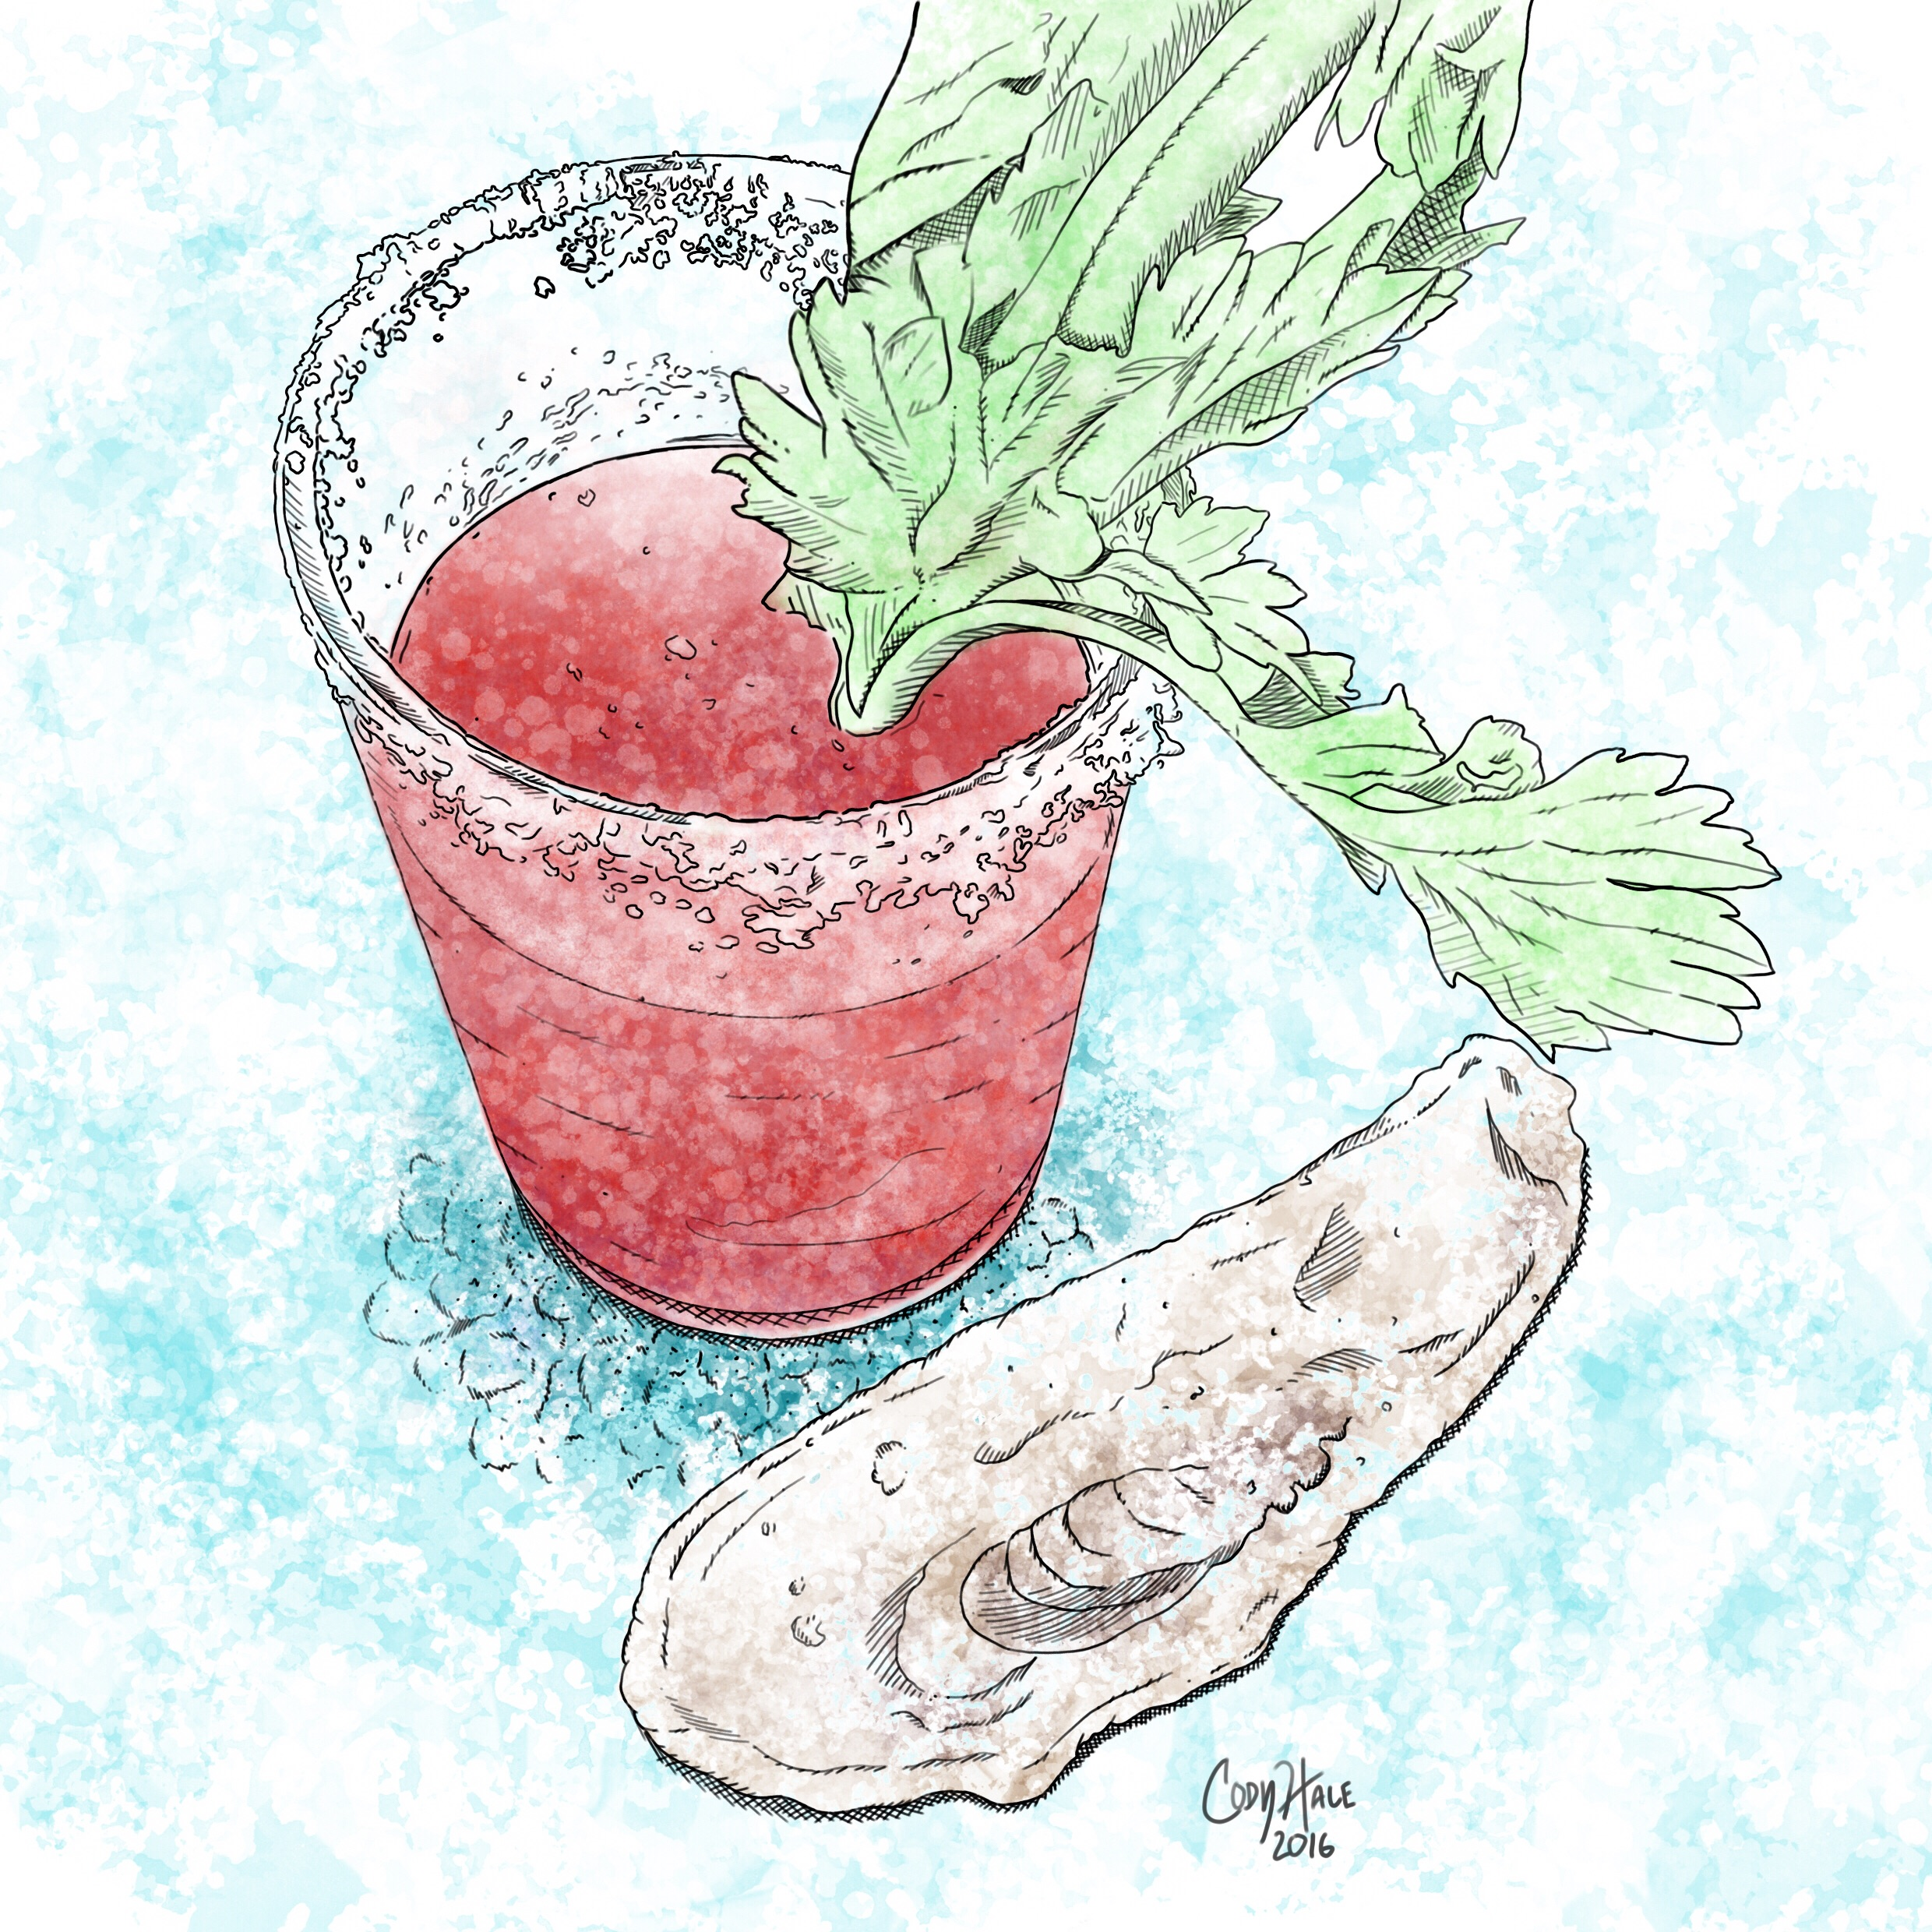 Bloody Mary Oyster Illustration